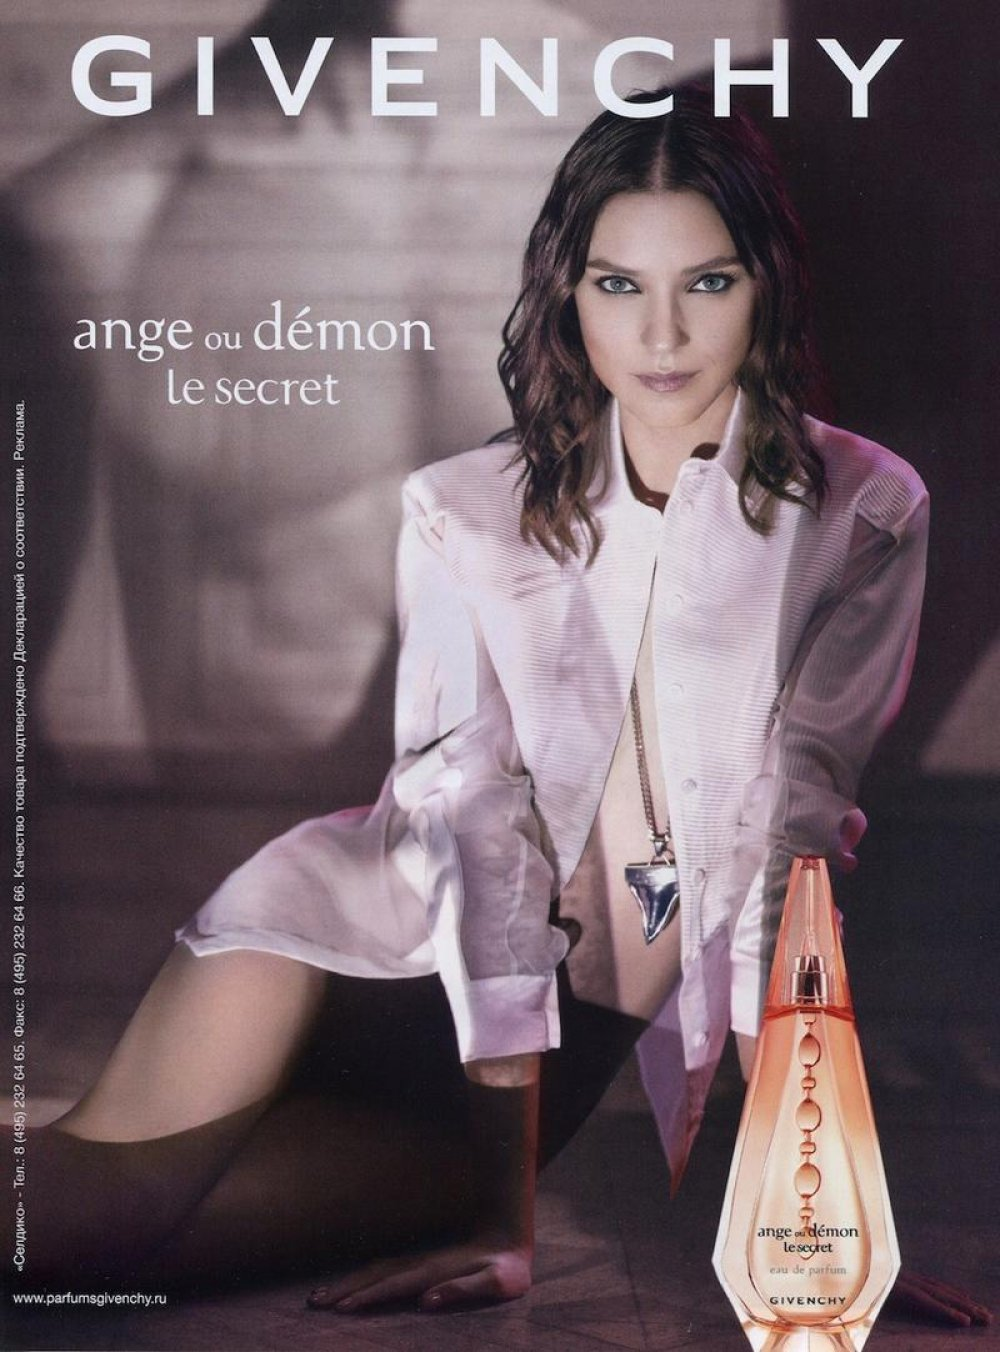 ange ou demon 'ange ou démon' is an enigma, the mystery of seduction in the form of a woman she astonishes you with her radiance, purity and seductive charm more than a perfume, 'ange ou démon' is a mysterious and luminous woman its oriental floral scent is a revelation of irresistible temptation.